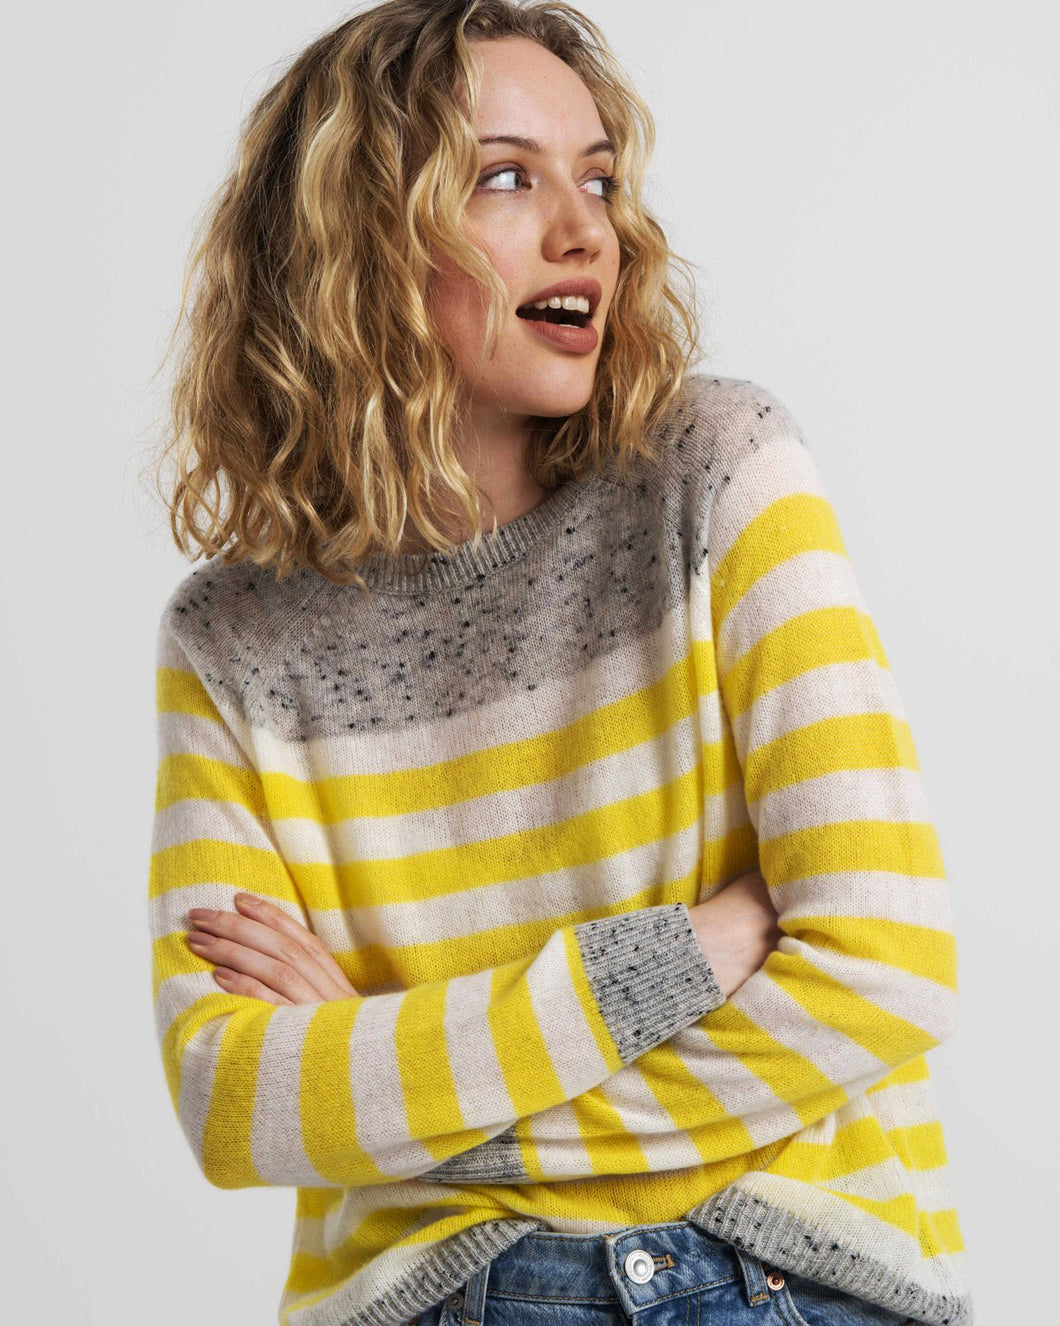 Cassie Cashmere in Yellow and Grey